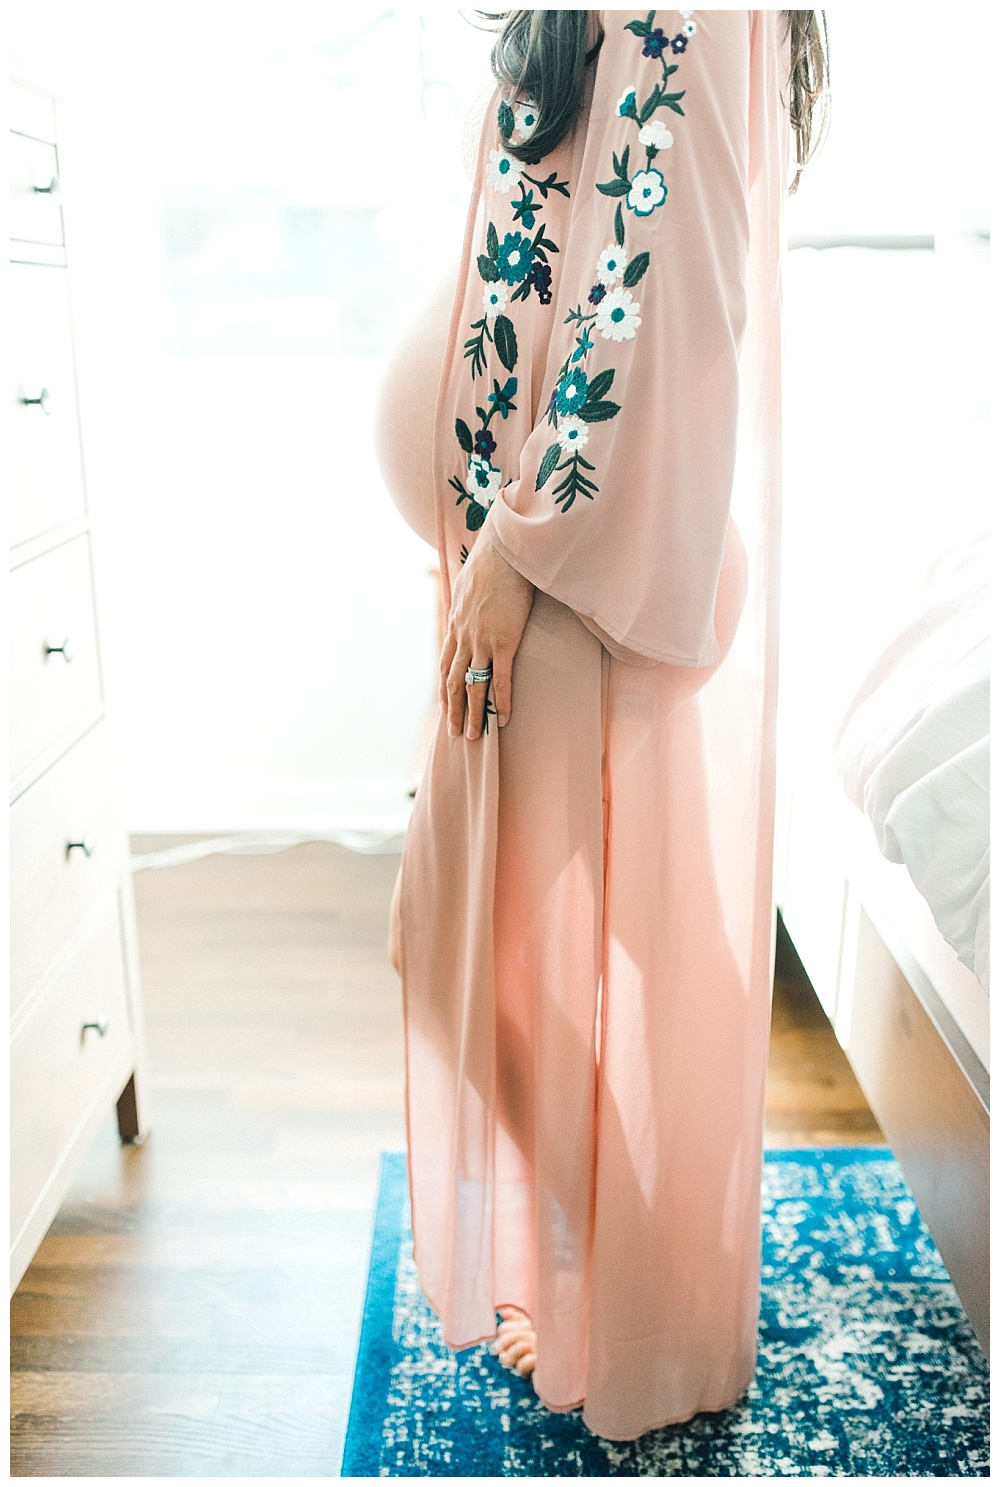 pregnant mother in bedroom with pink kimono showing belly